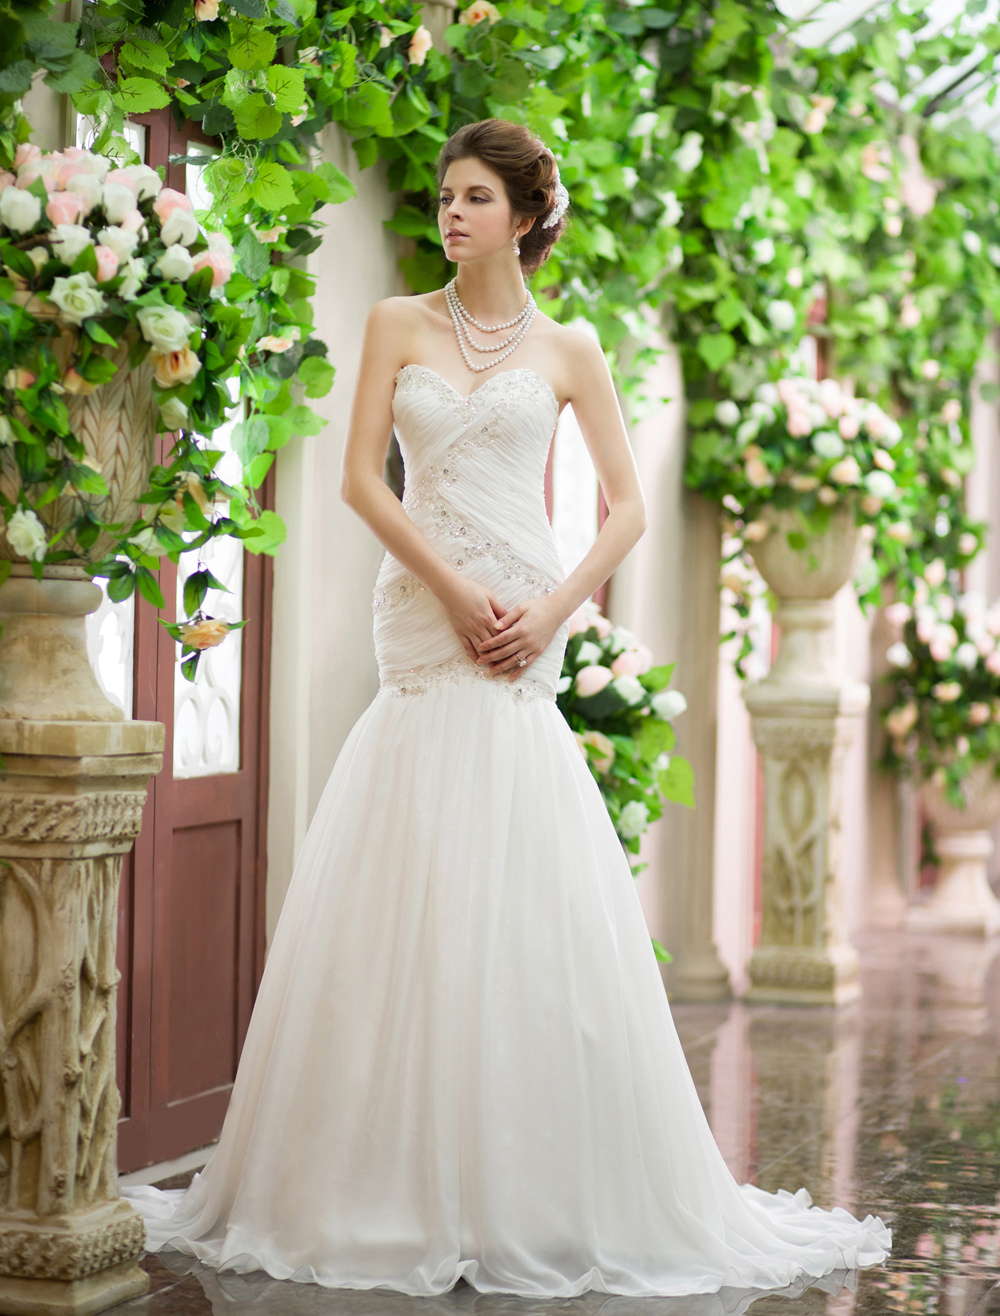 Ivory Sweetheart Lace-up Ruched Chiffon Bridal Mermaid Wedding Dress Milanoo